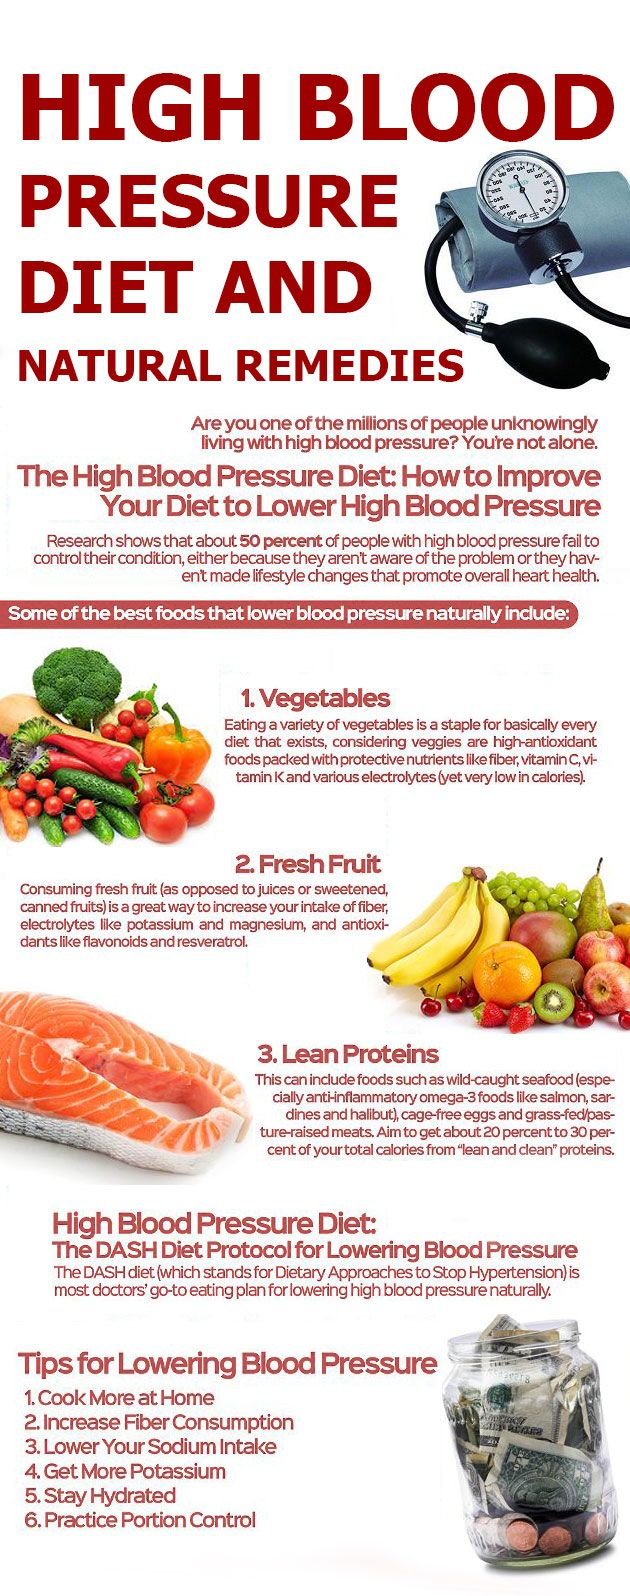 Watch How To Lower High Blood Pressure Using Reflexology video